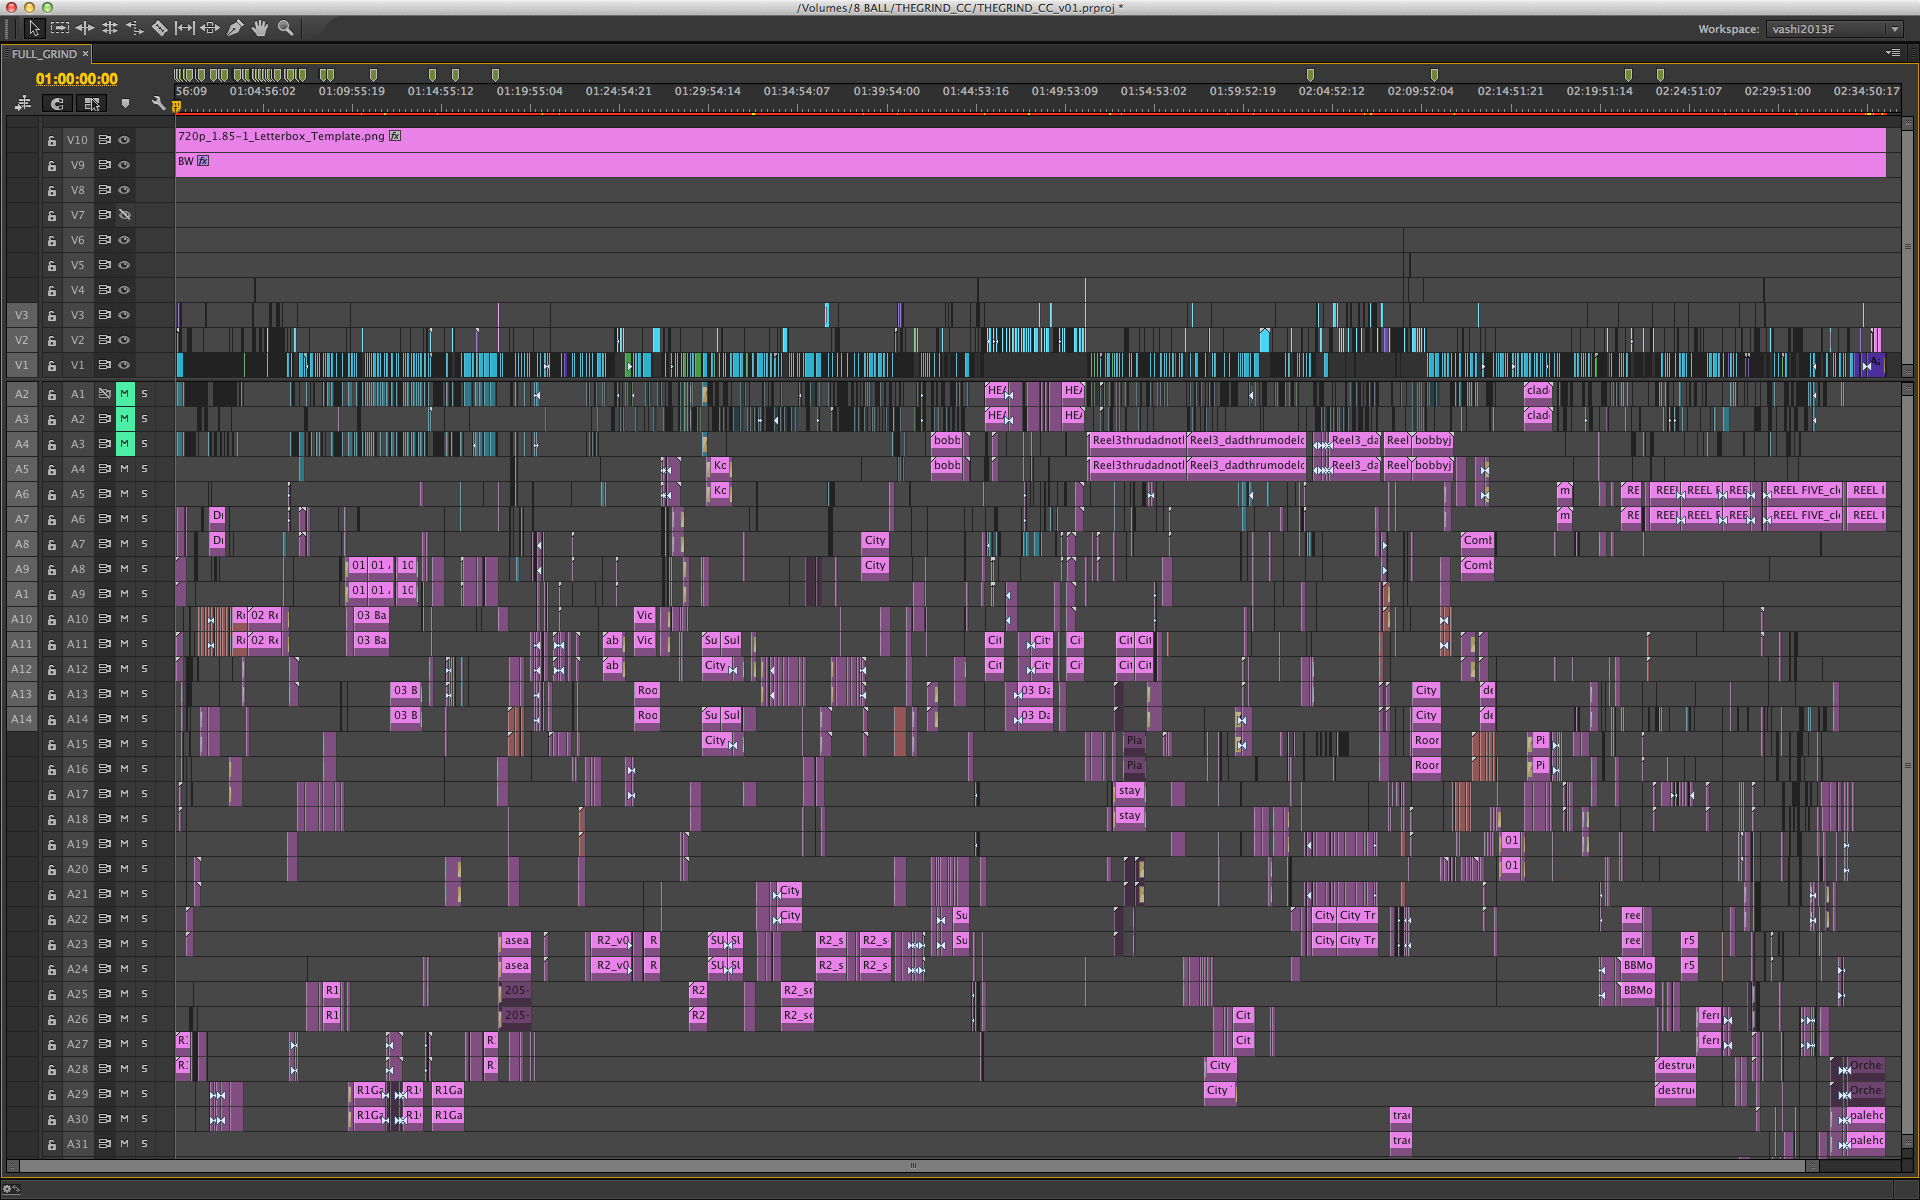 Full 95 minute timeline in Adobe Premiere Pro CC